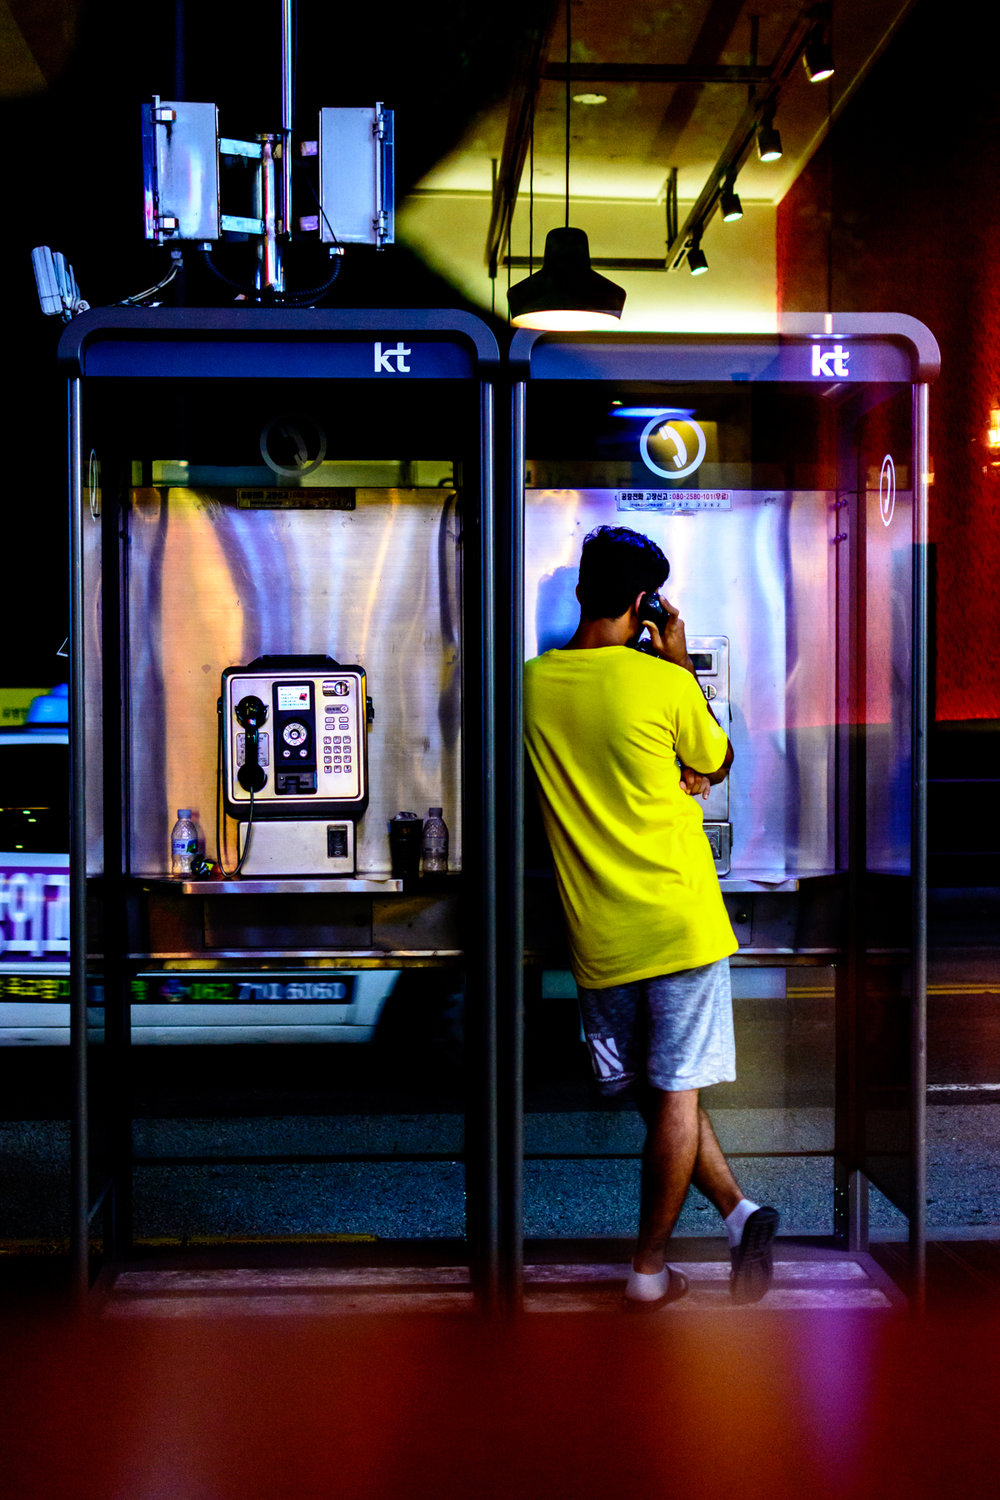 A man makes a call on a payphone near Chonnam University back gate.